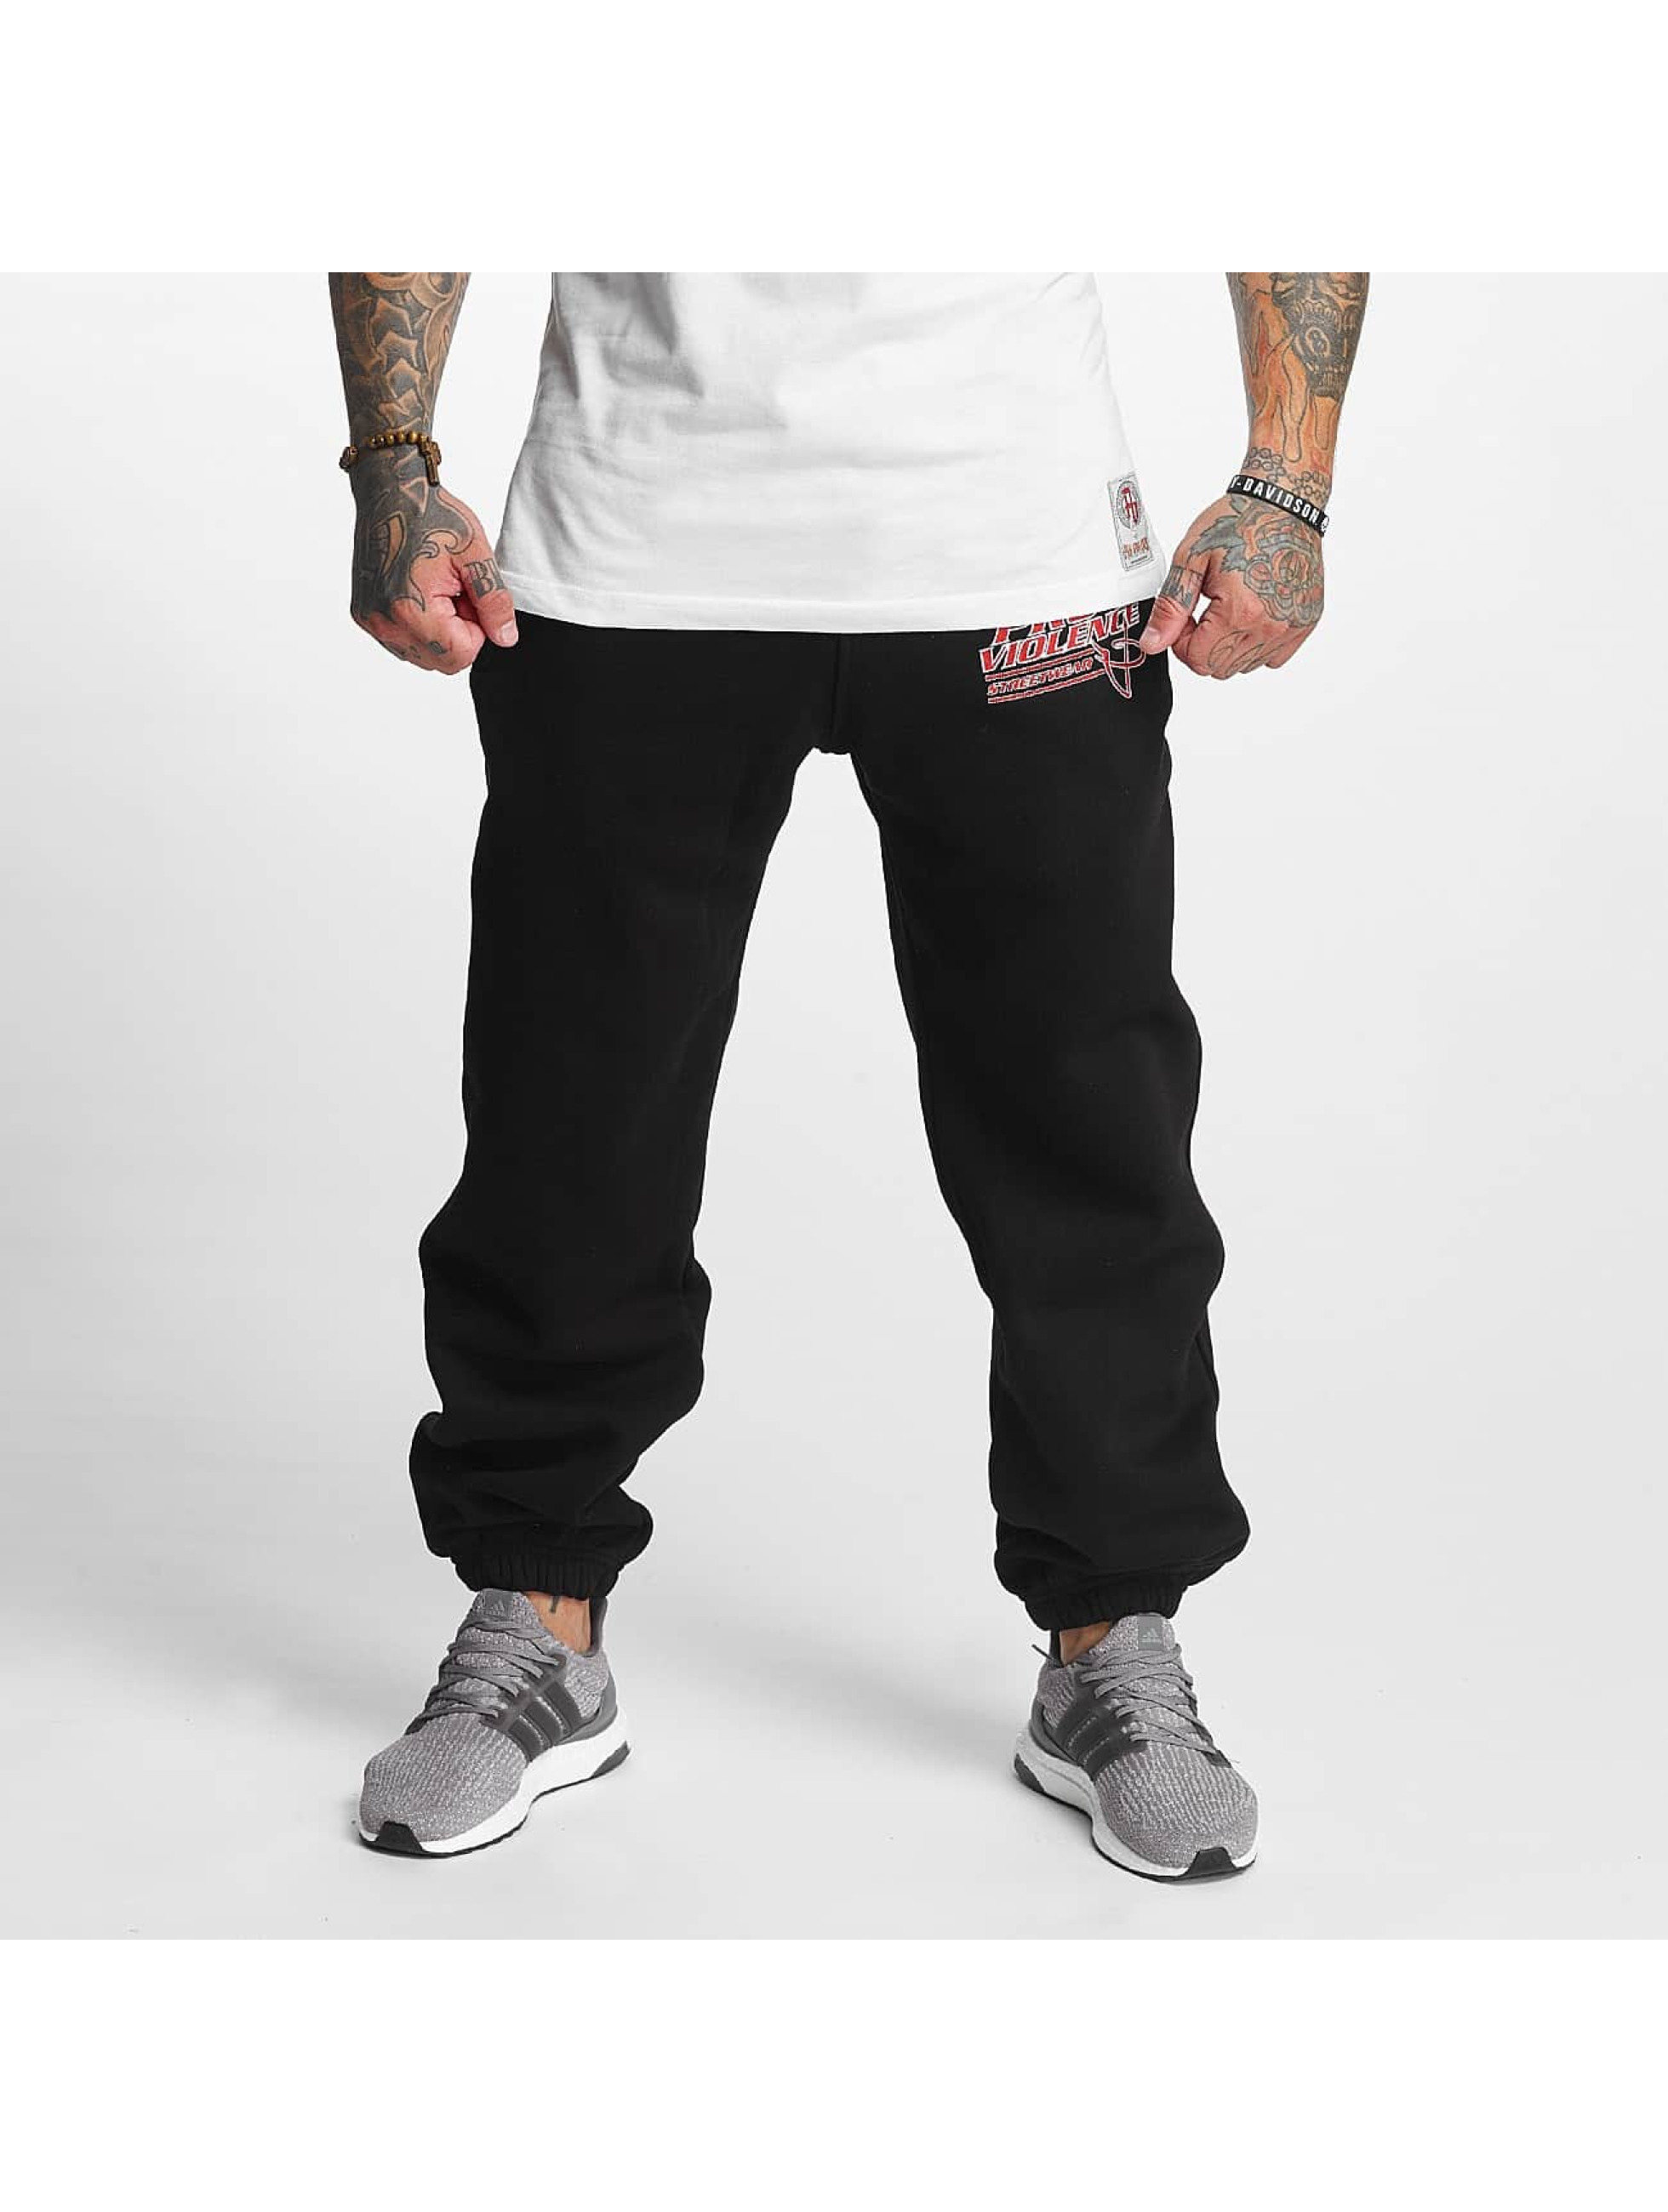 Pro Violence Streetwear joggingbroek Label No. 1 zwart